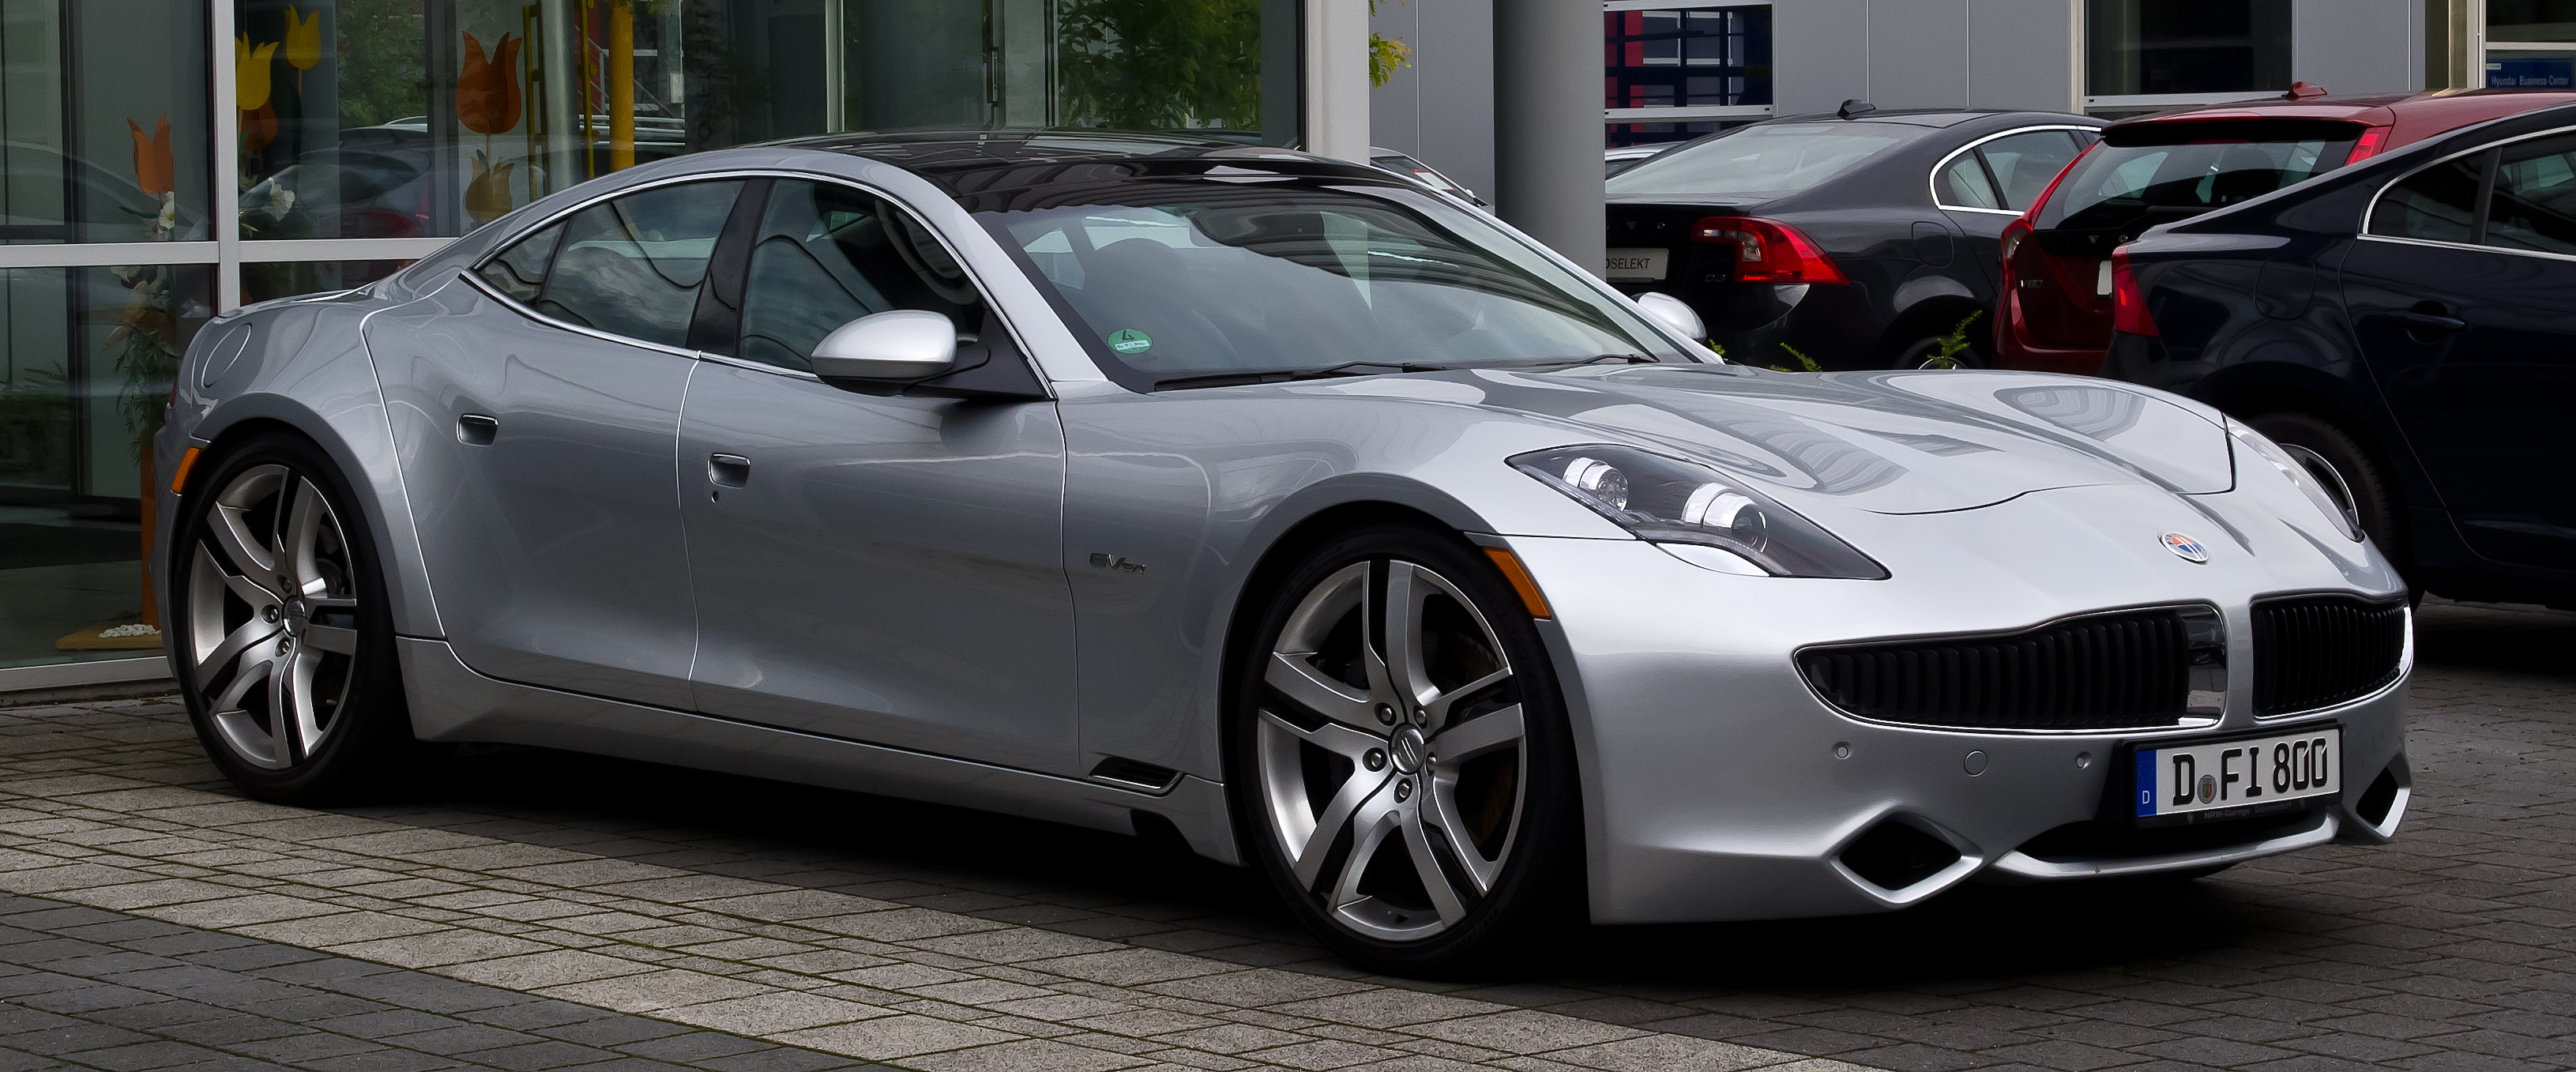 File:Fisker Karma EVer...